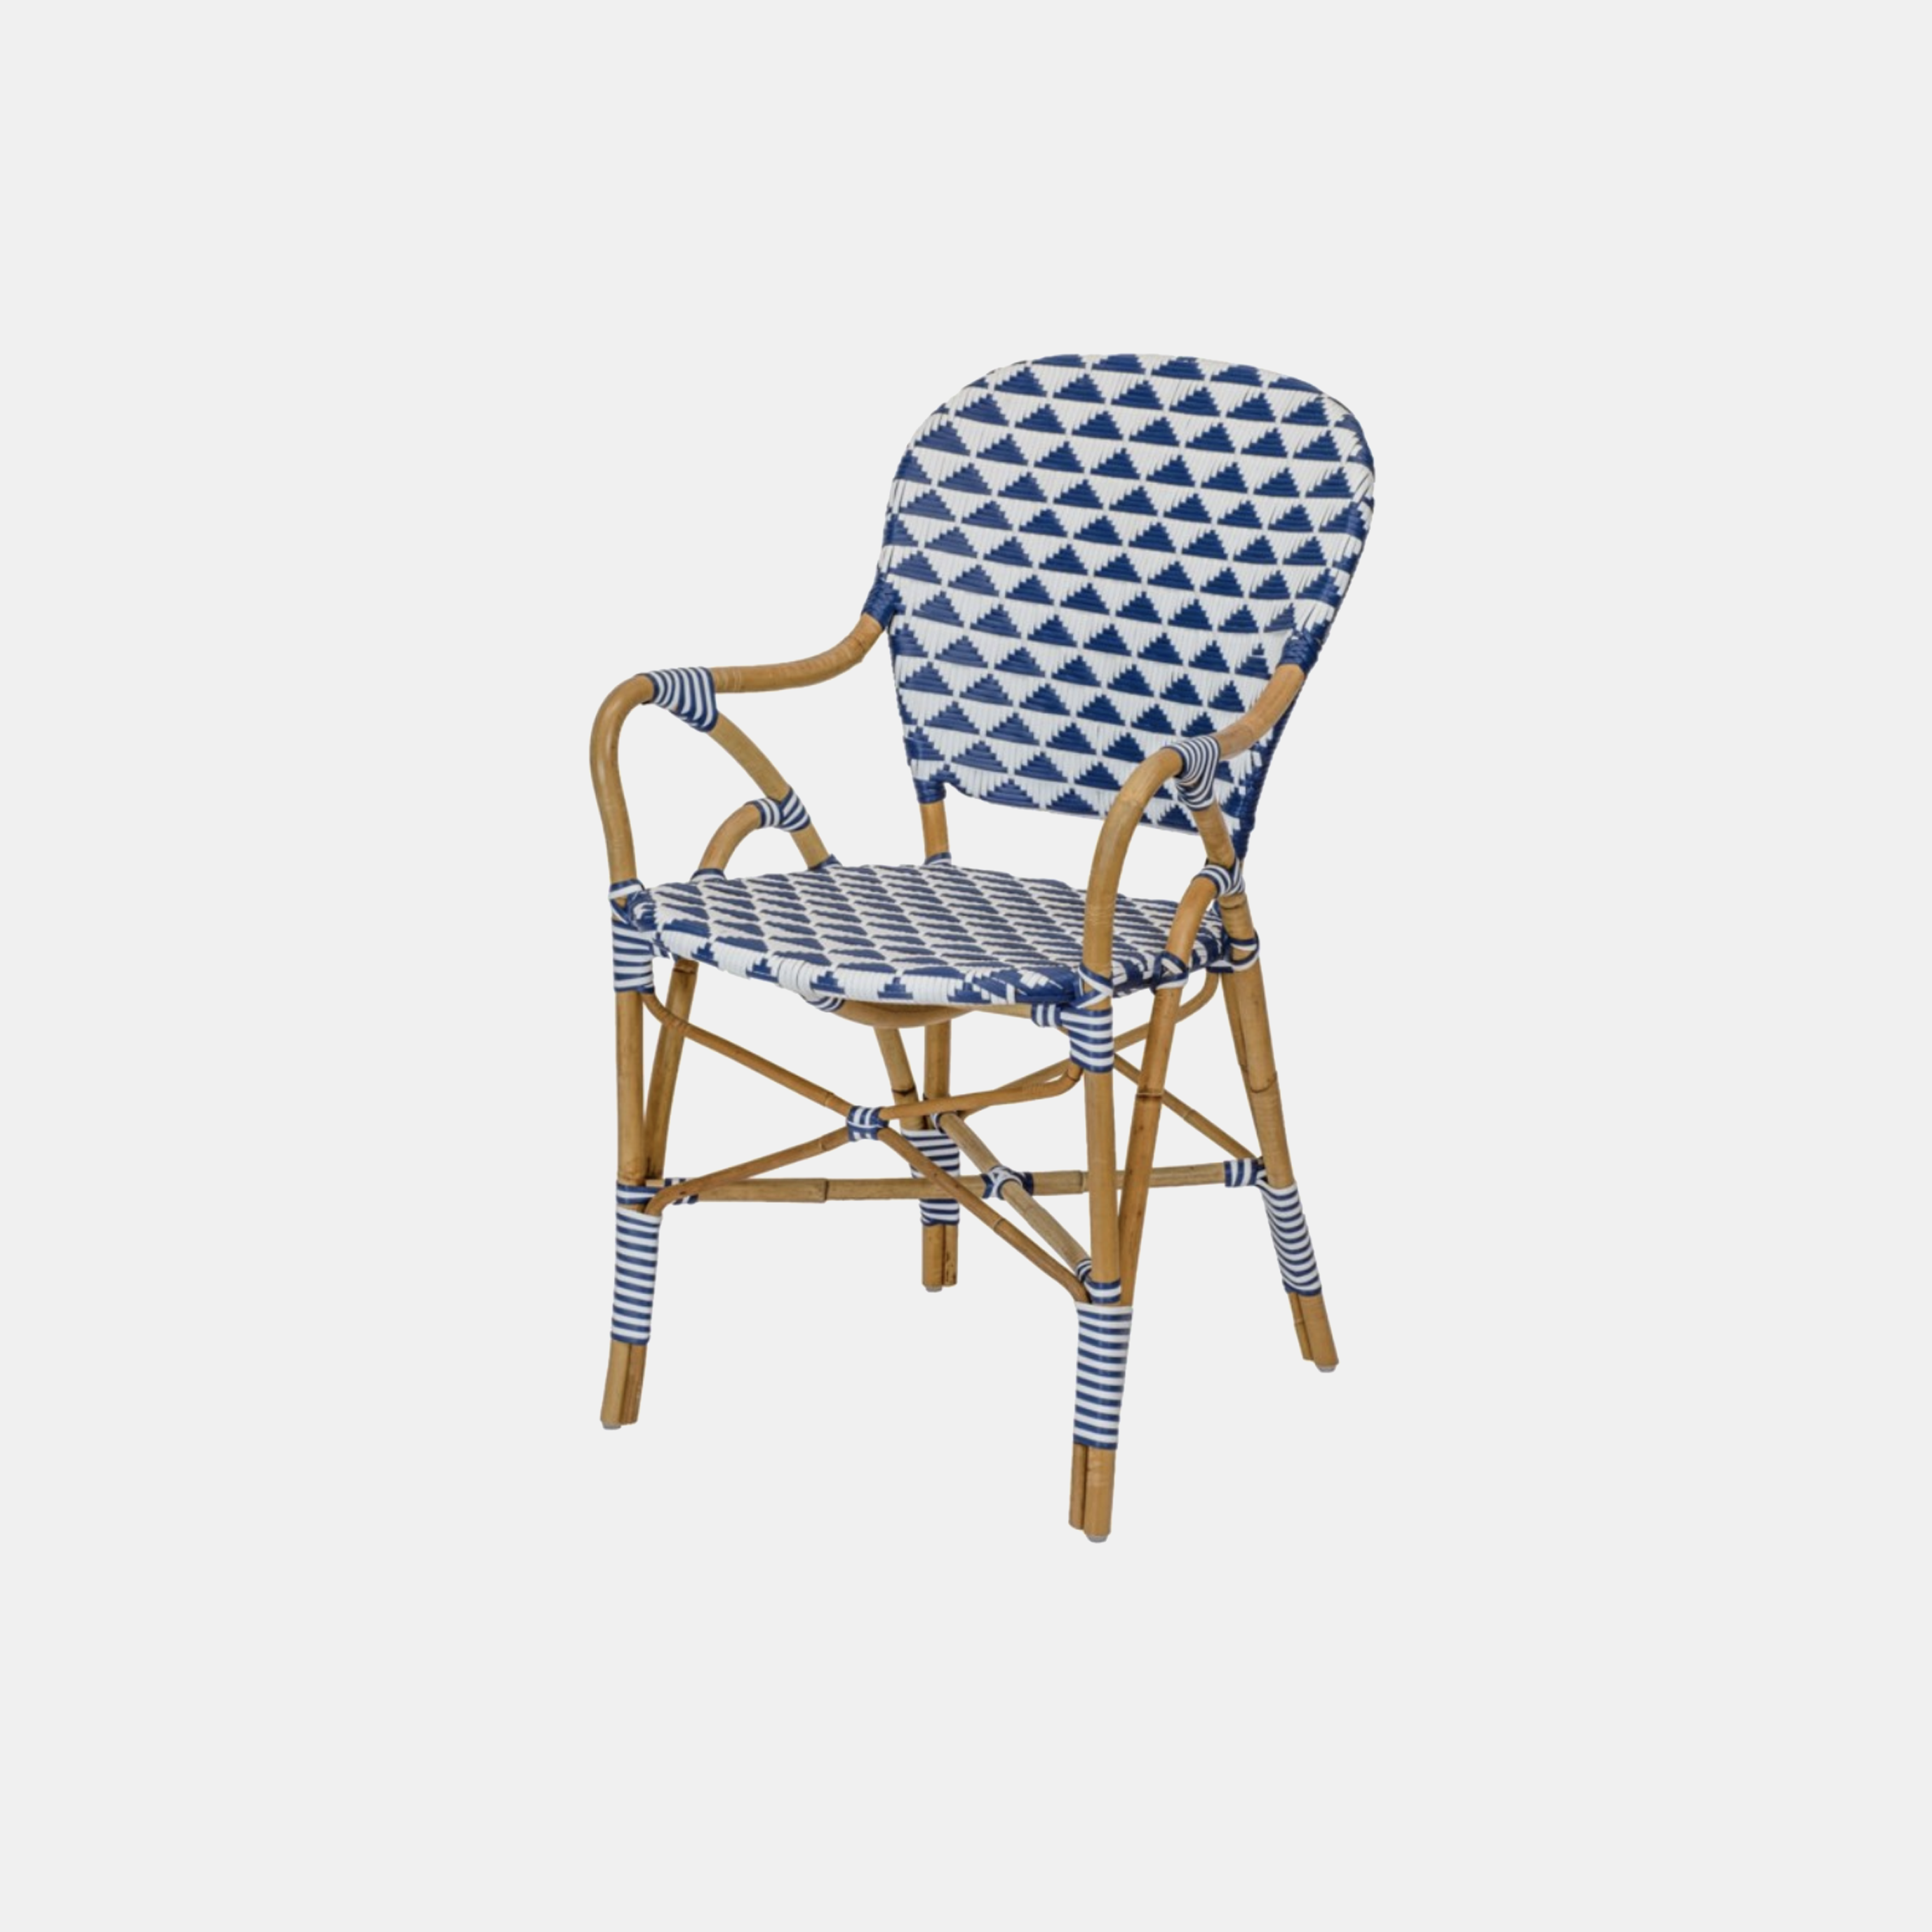 Pinnacles Arm Chair  20.25'' x 23.5'' x 34.5'' Available in blue/white (shown), natural/black, and white/blush. Also available as side chair. SKU3348SLM